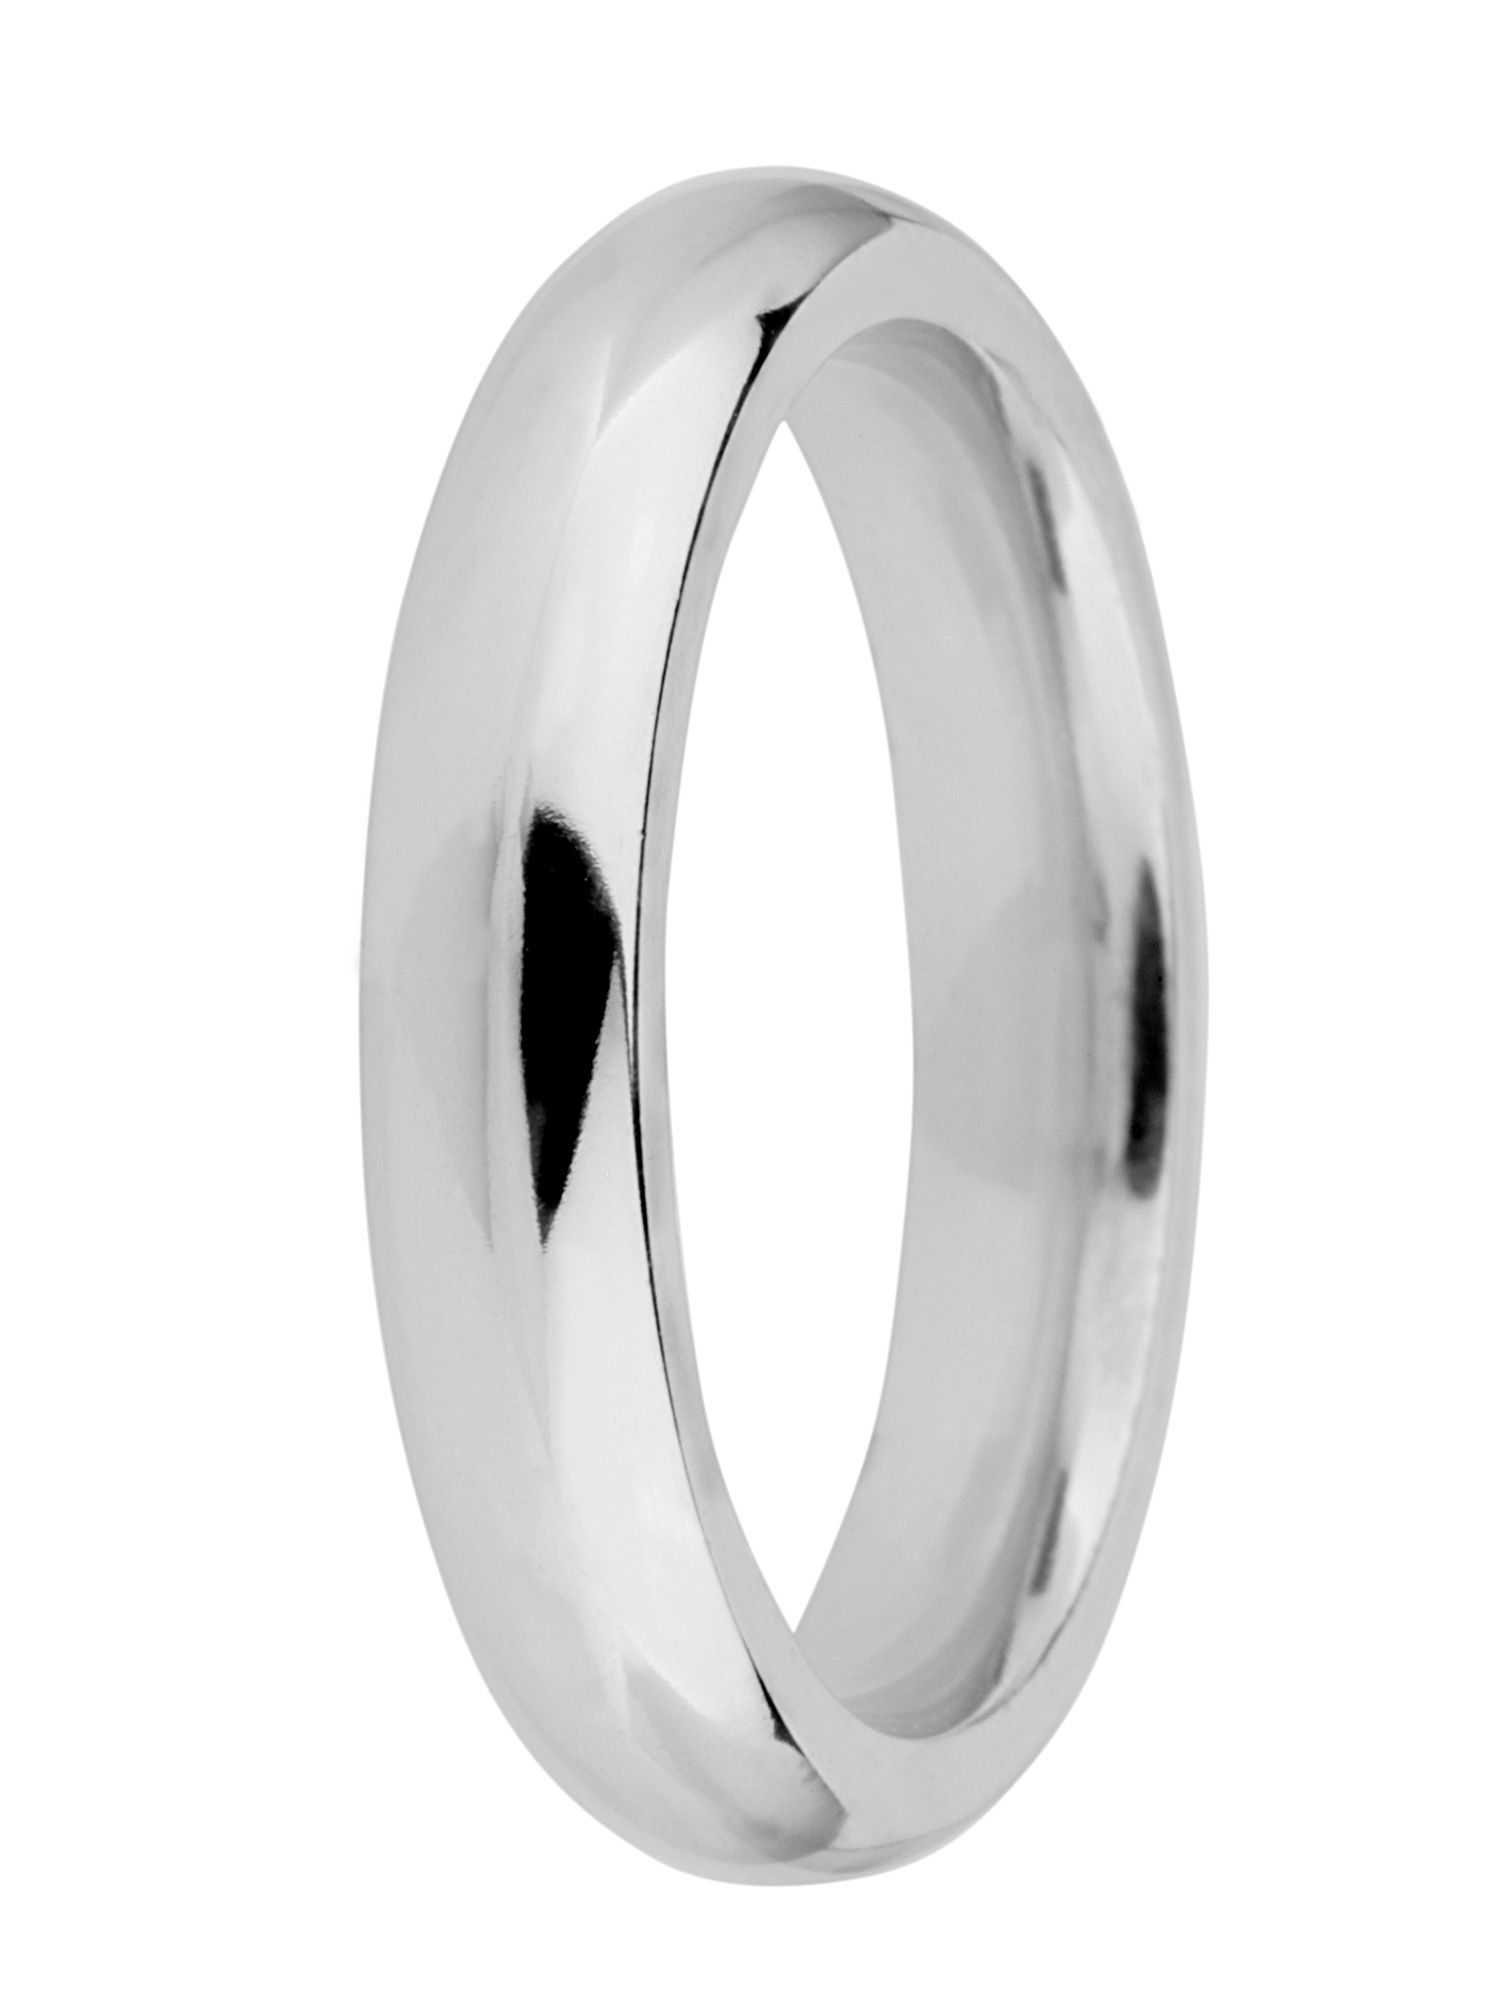 Grooms 18ct gold 4mm court wedding ring - White Gold